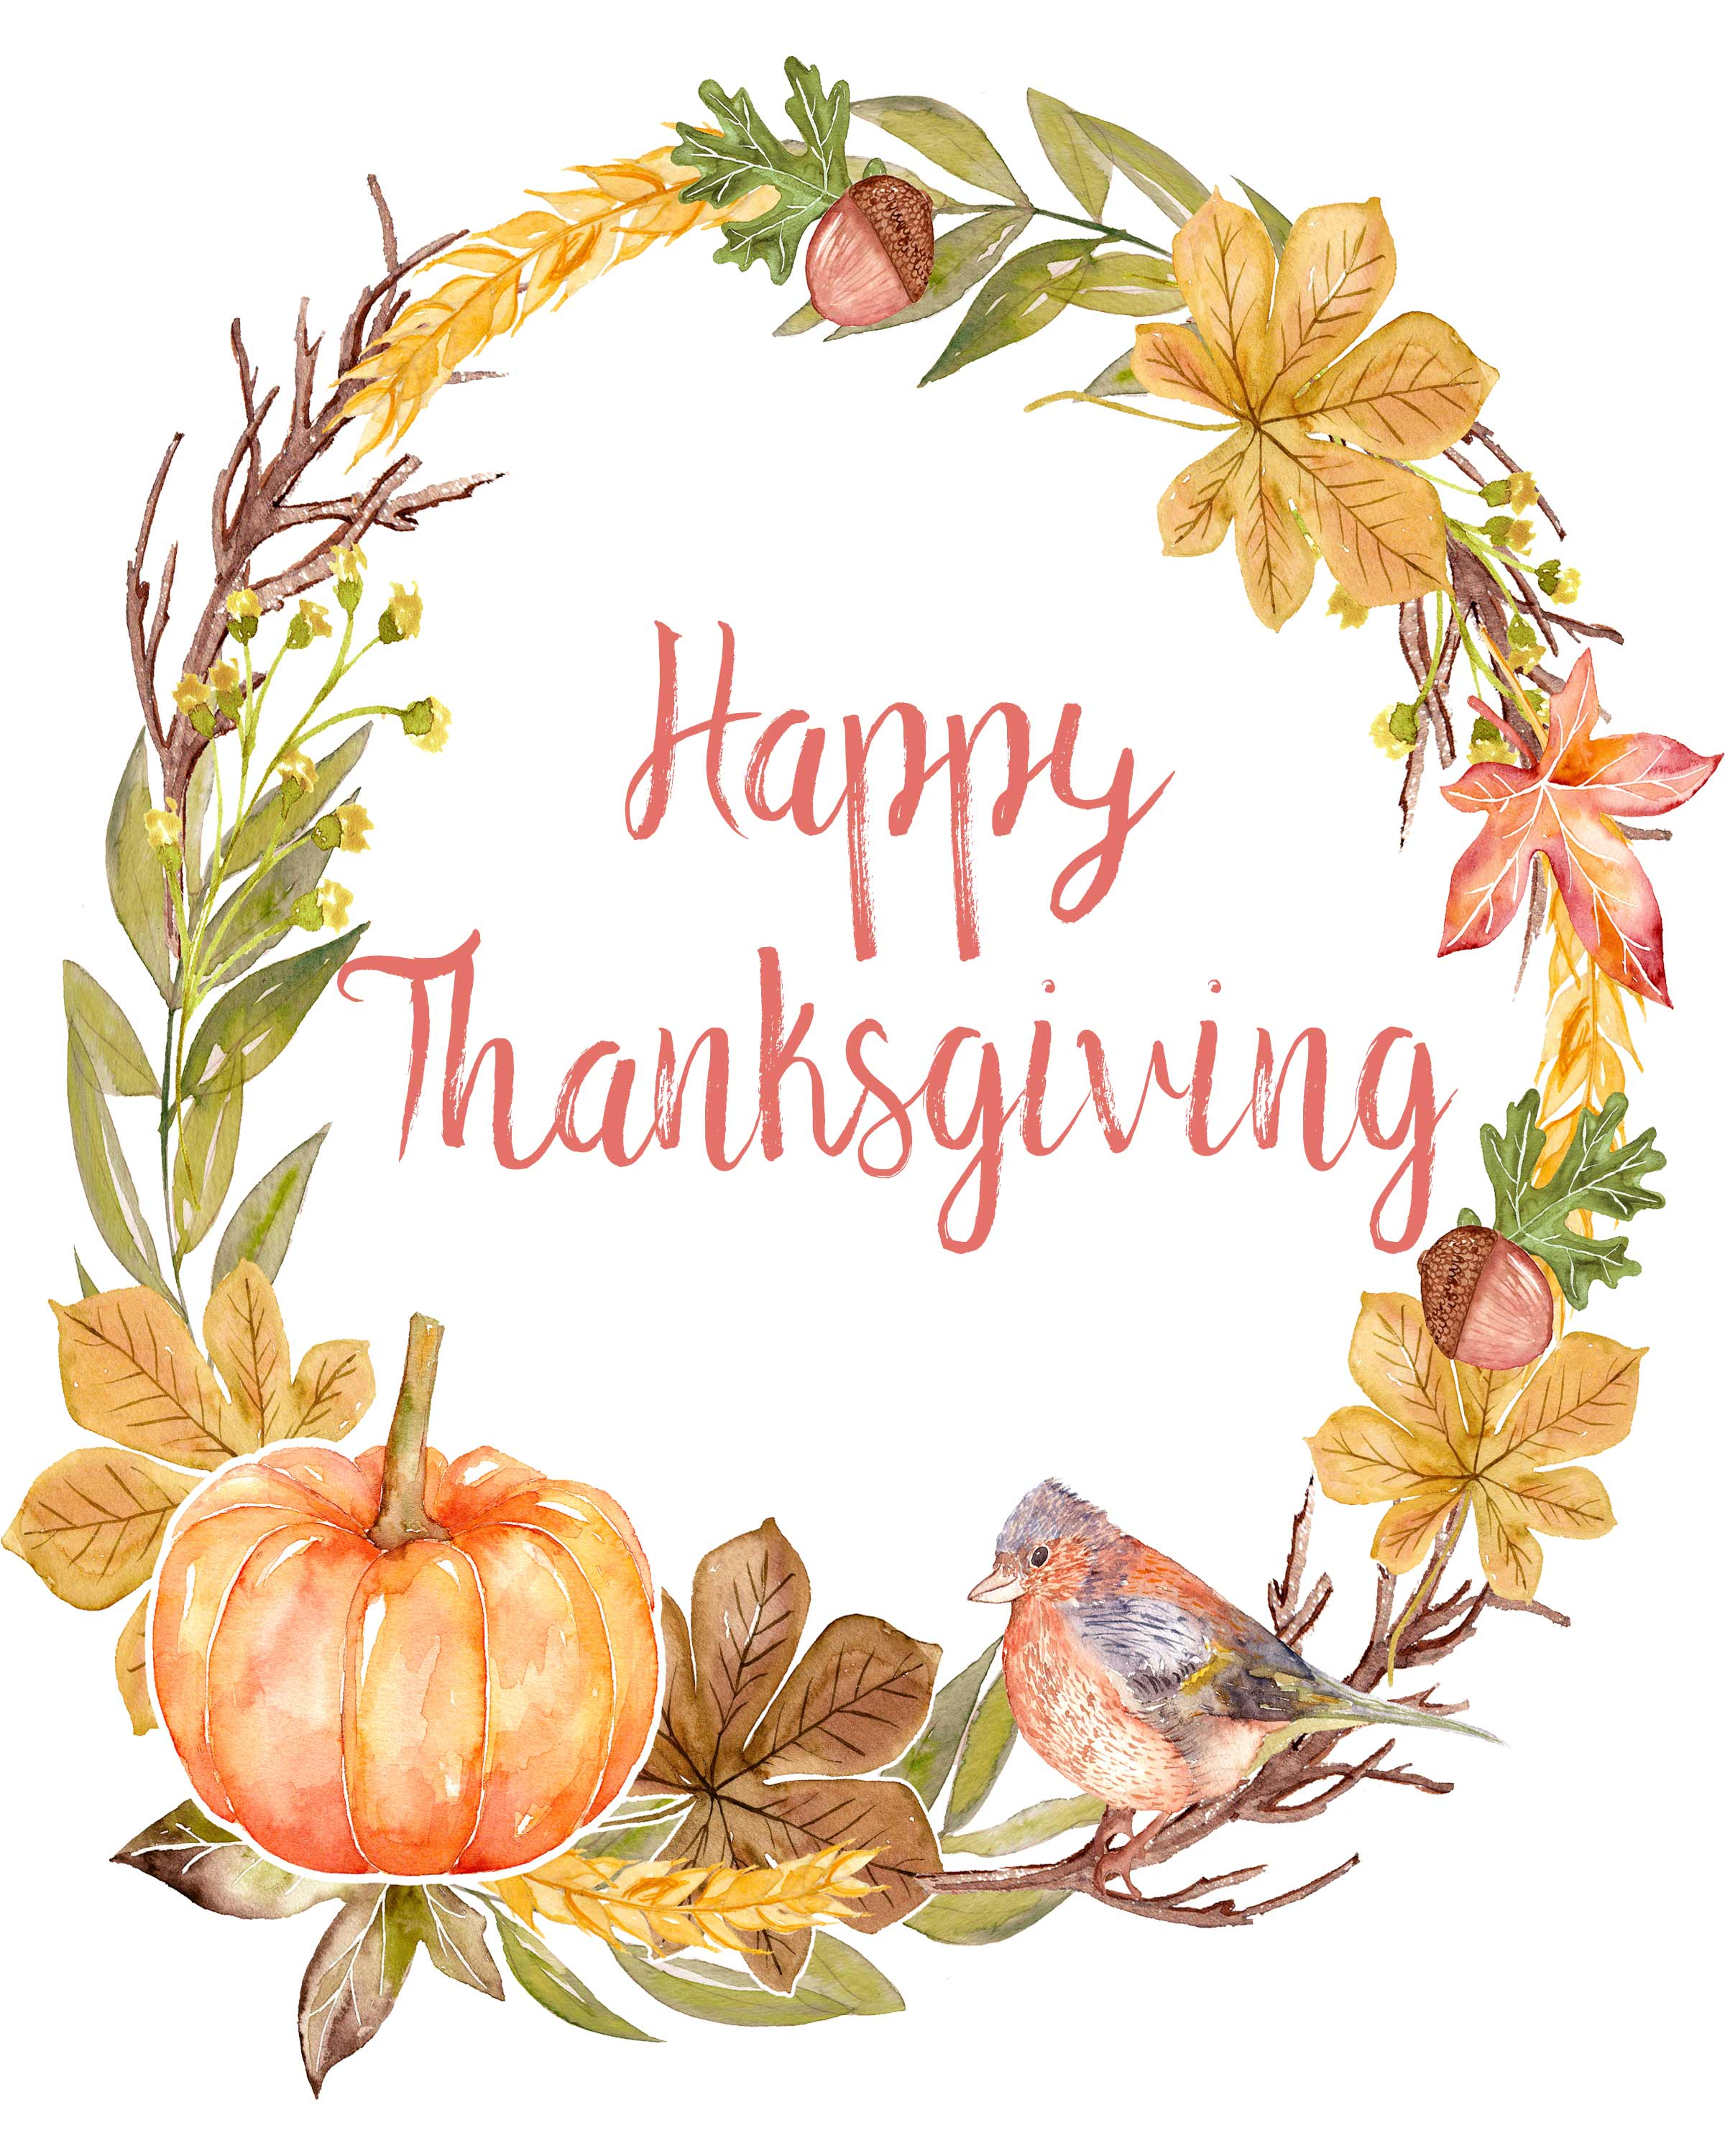 4 Gorgeous Free Printable Thanksgiving Wall Art Designs